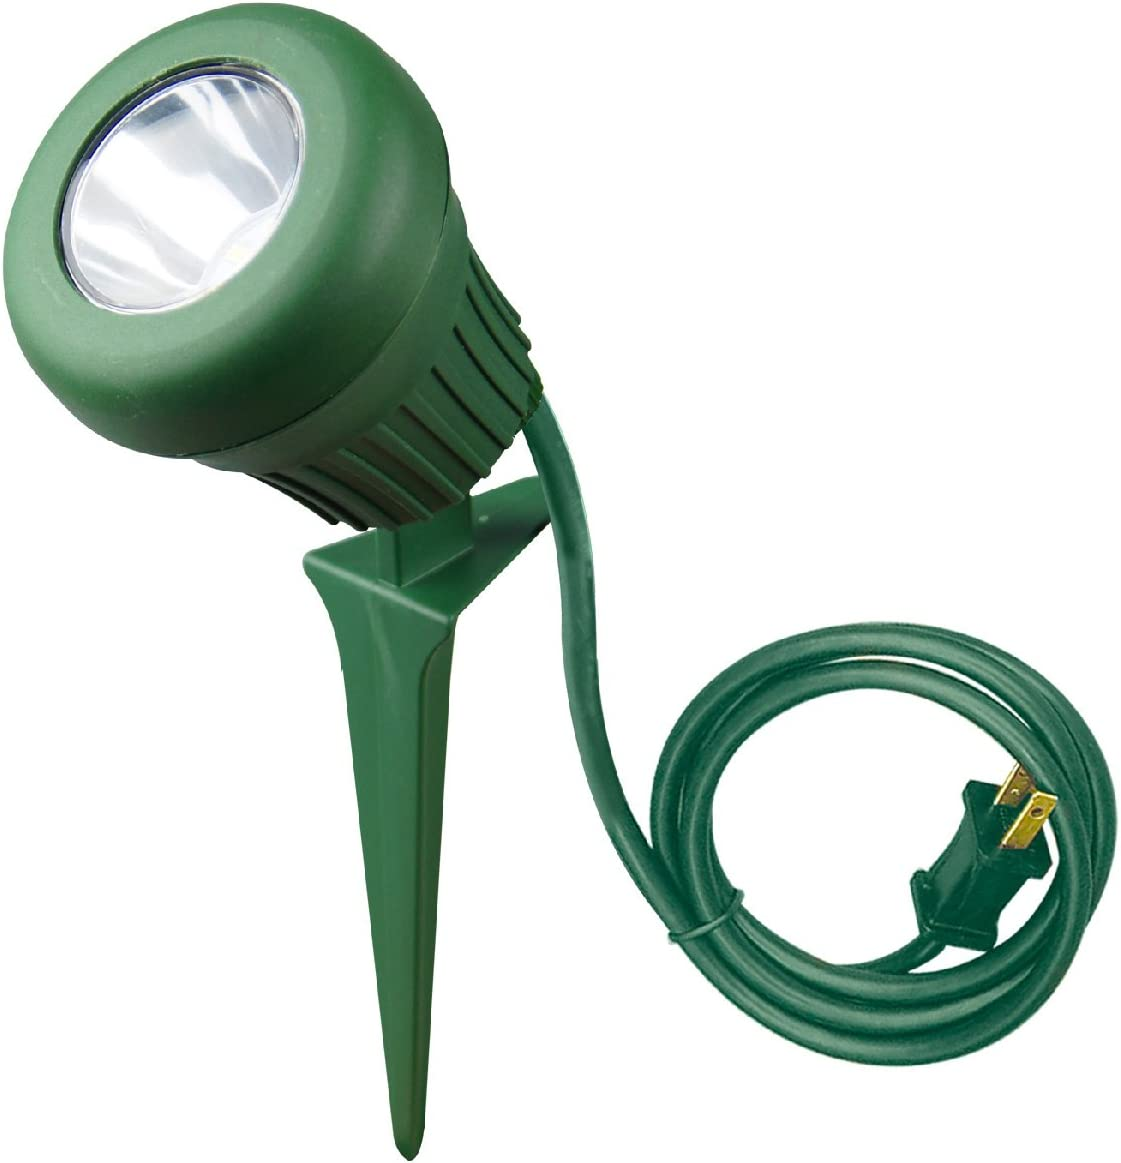 Woods 434 LED Outdoor Garden Flood Light with Stake, 3-Feet SJTW Cord